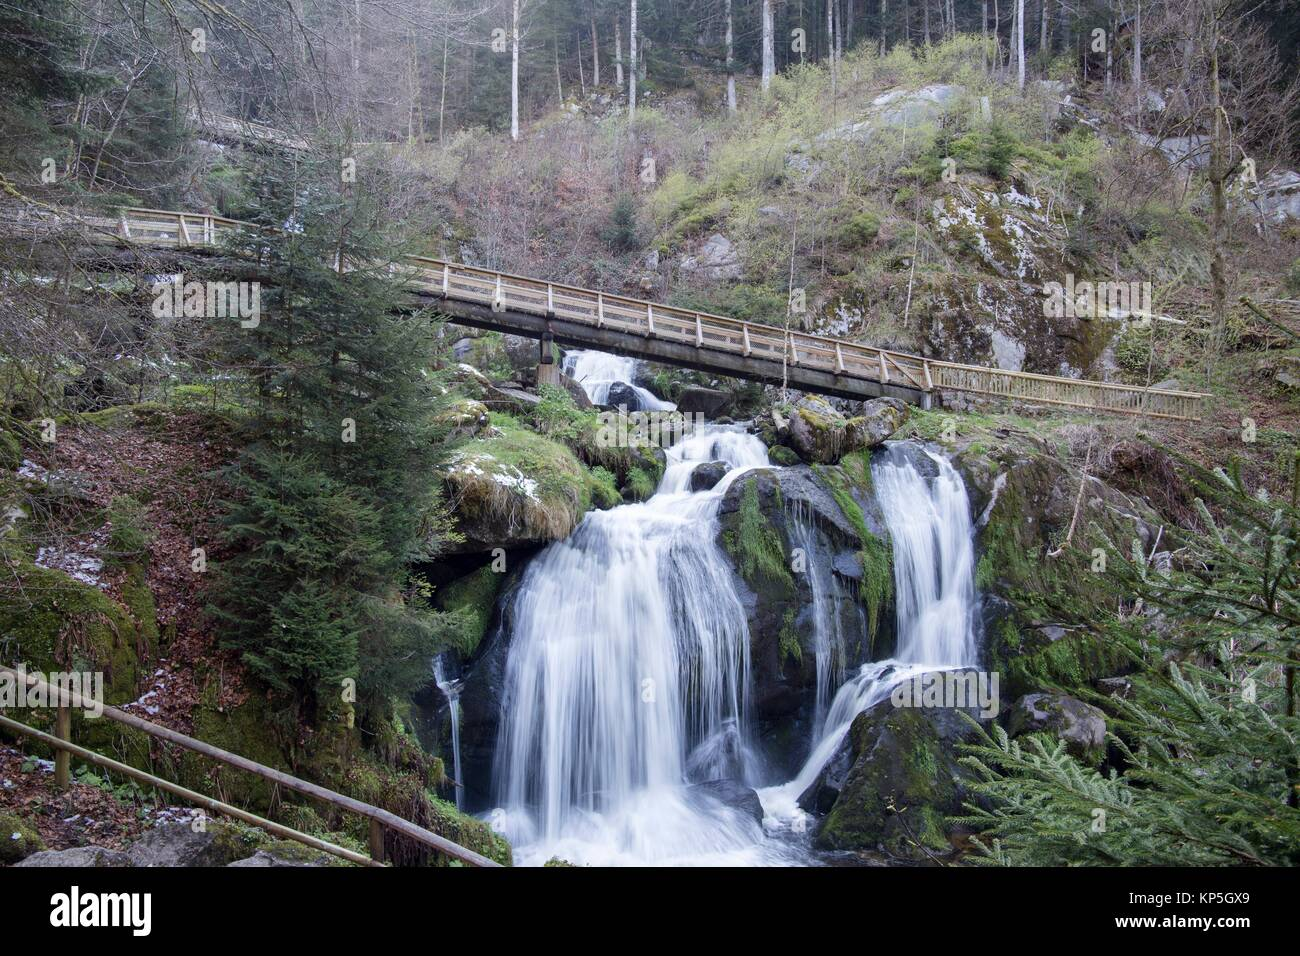 Wasserfall Triberg cascades Black forest Germany. - Stock Image